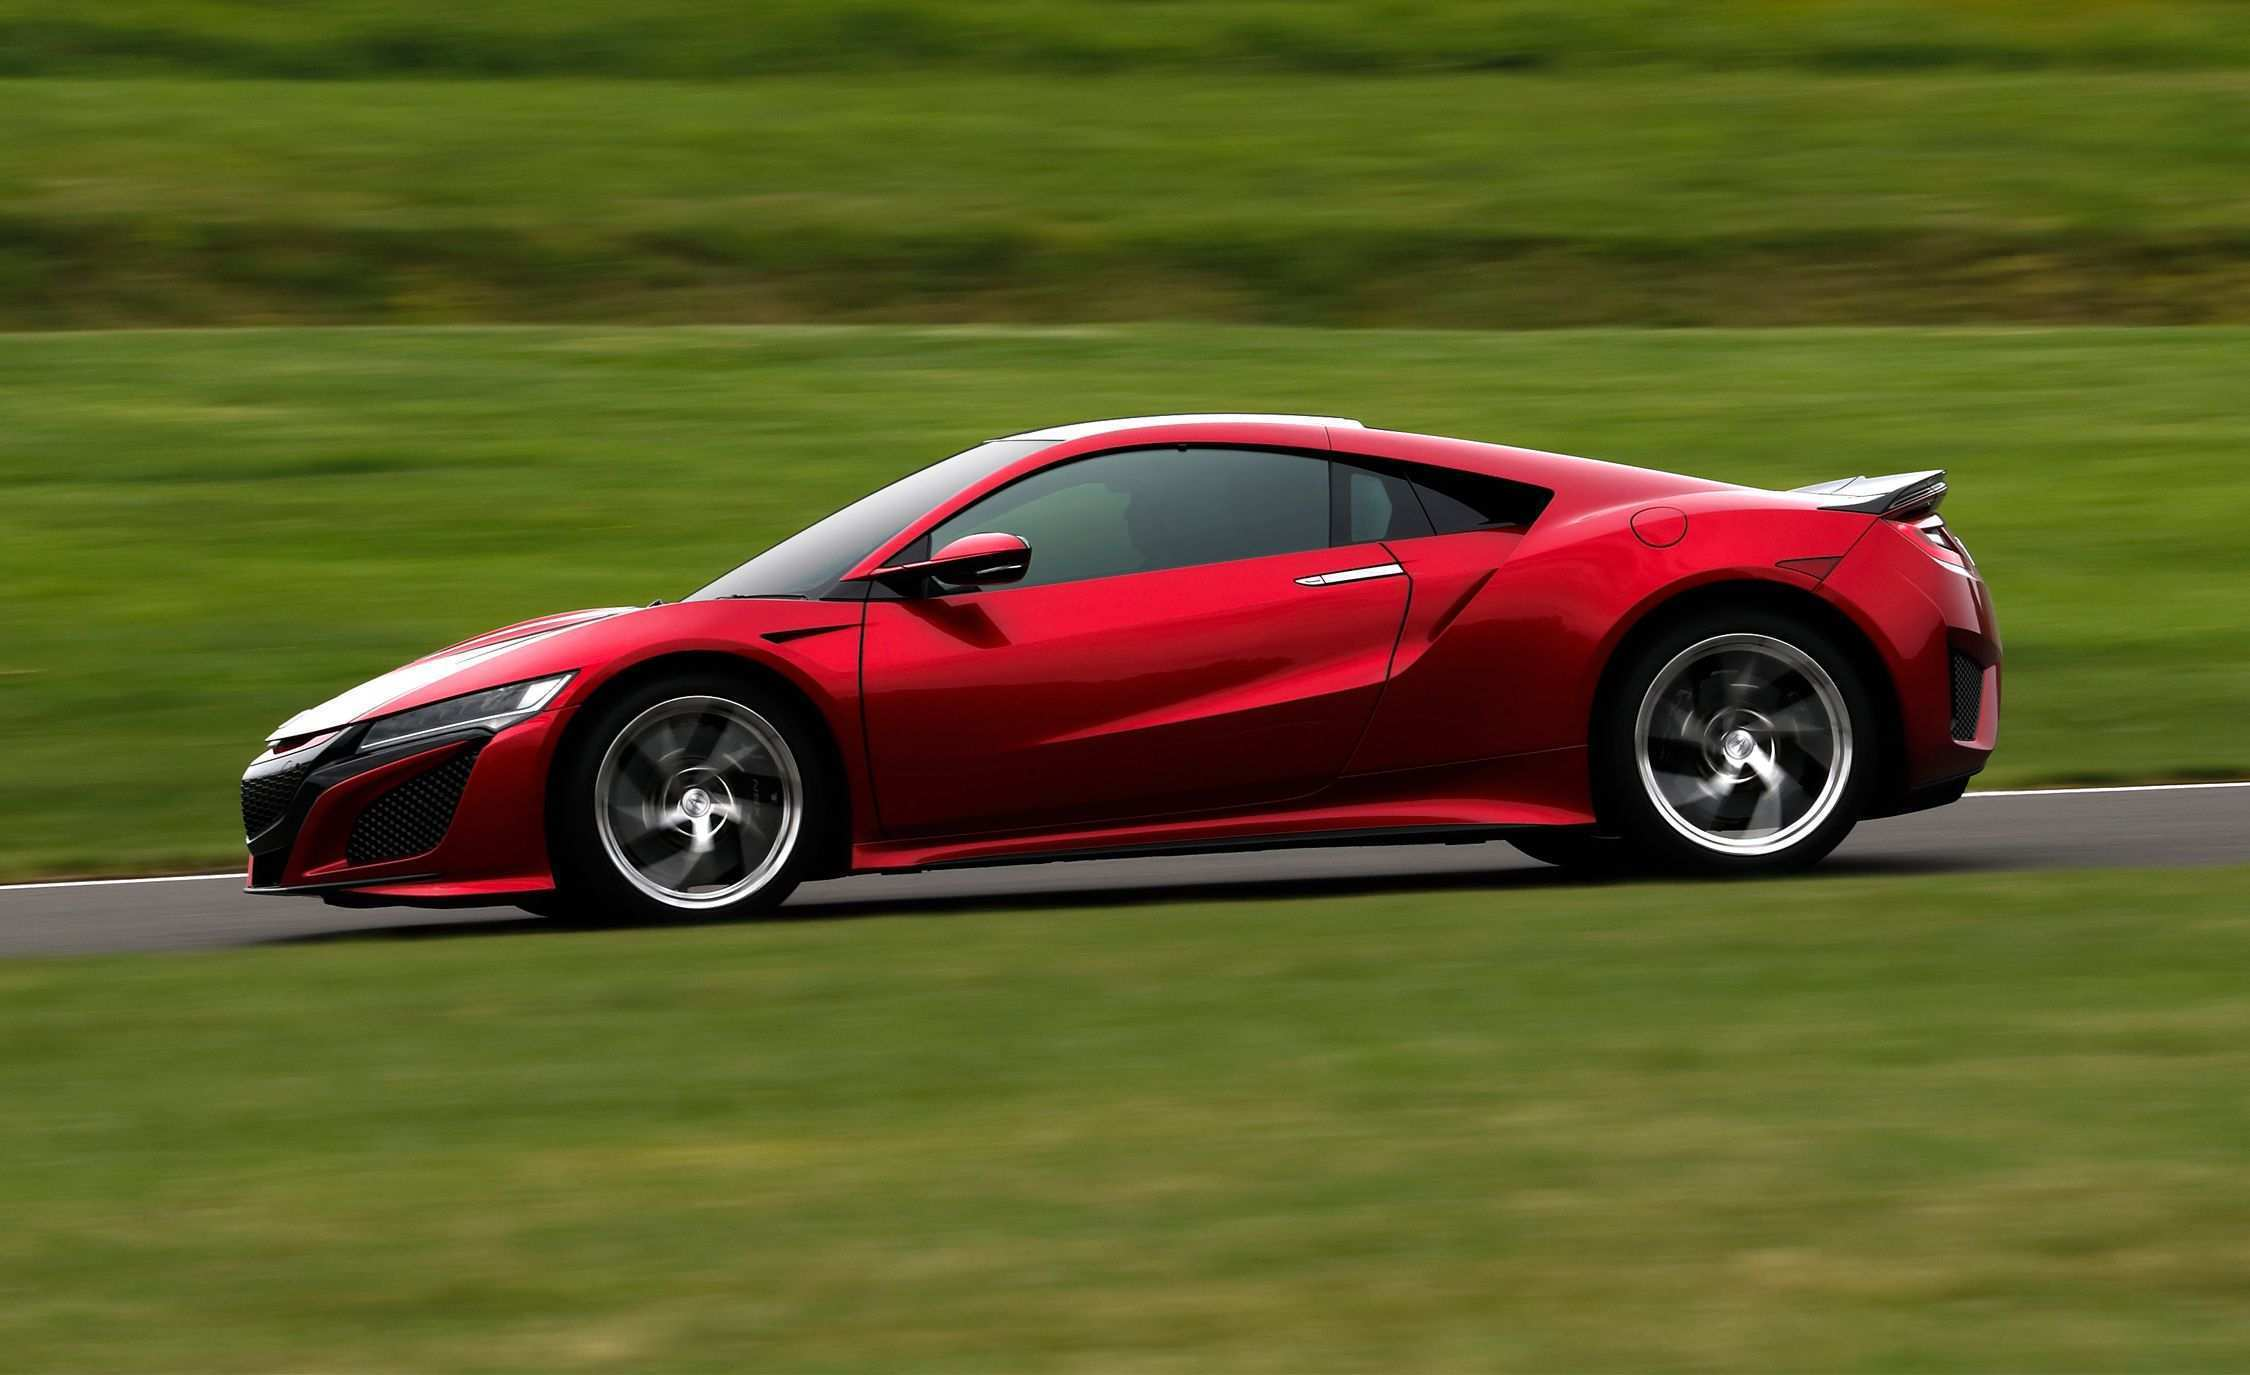 84 Gallery of 2019 Acura Nsx Horsepower Reviews by 2019 Acura Nsx Horsepower